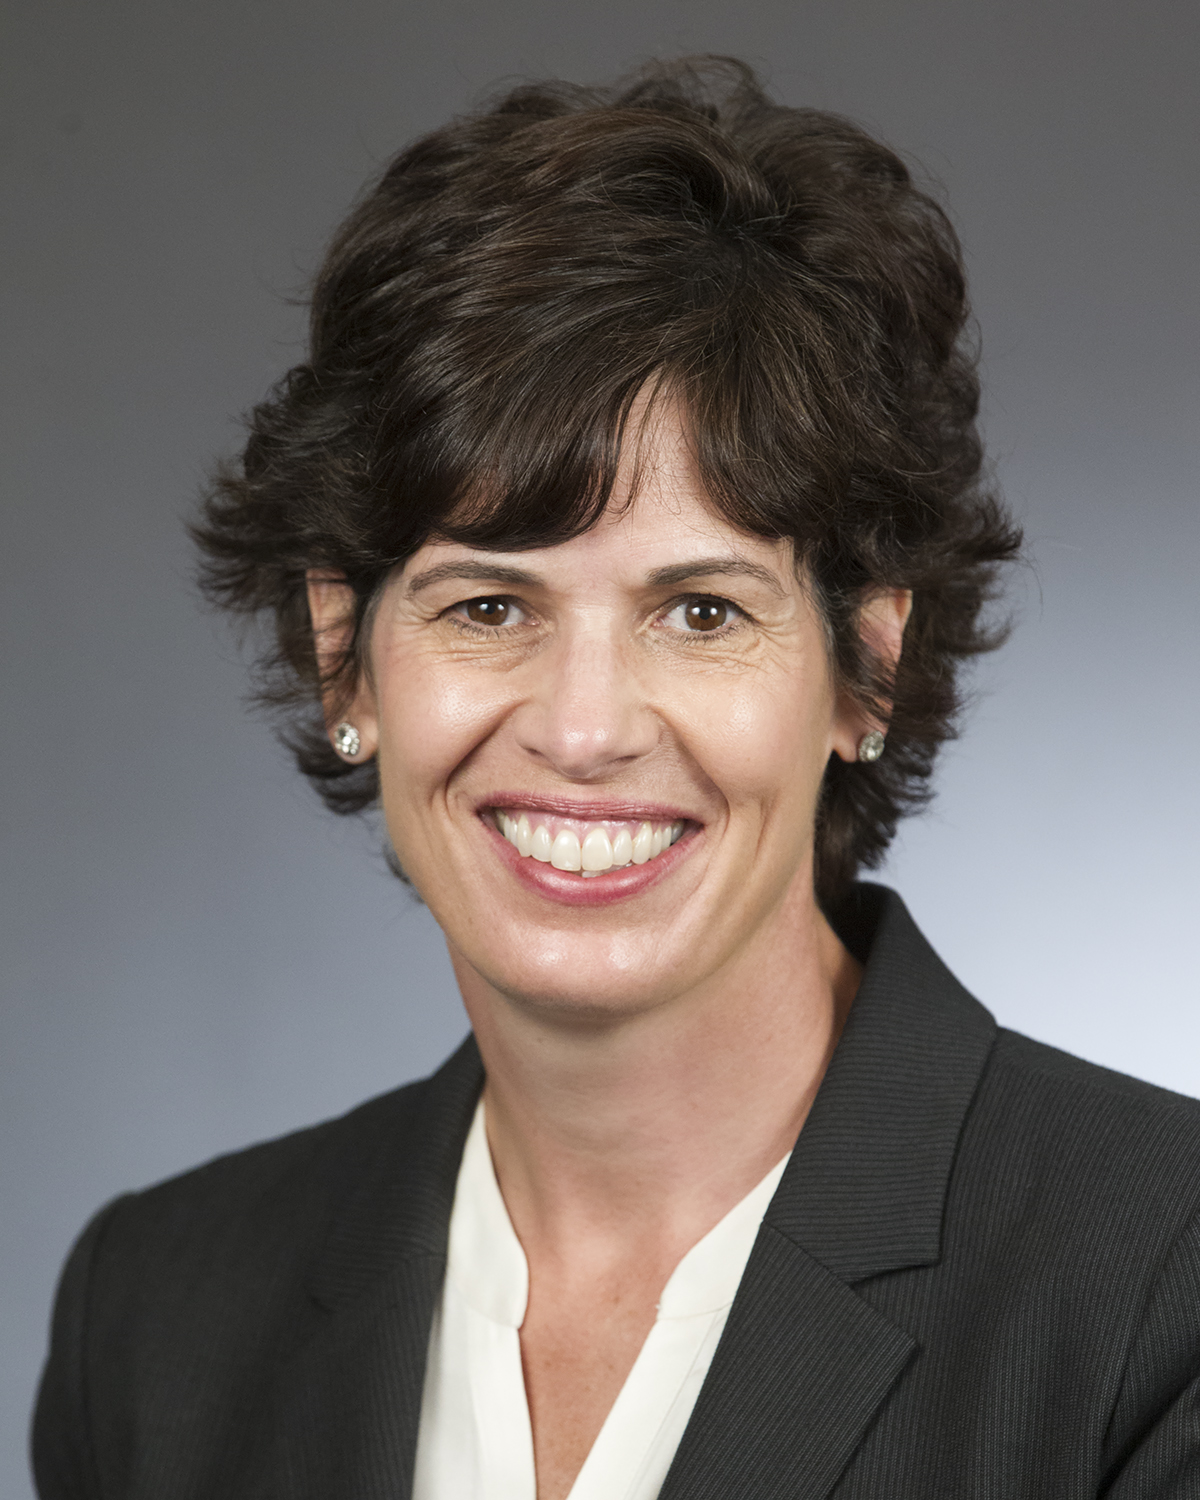 Representative Barb Haley